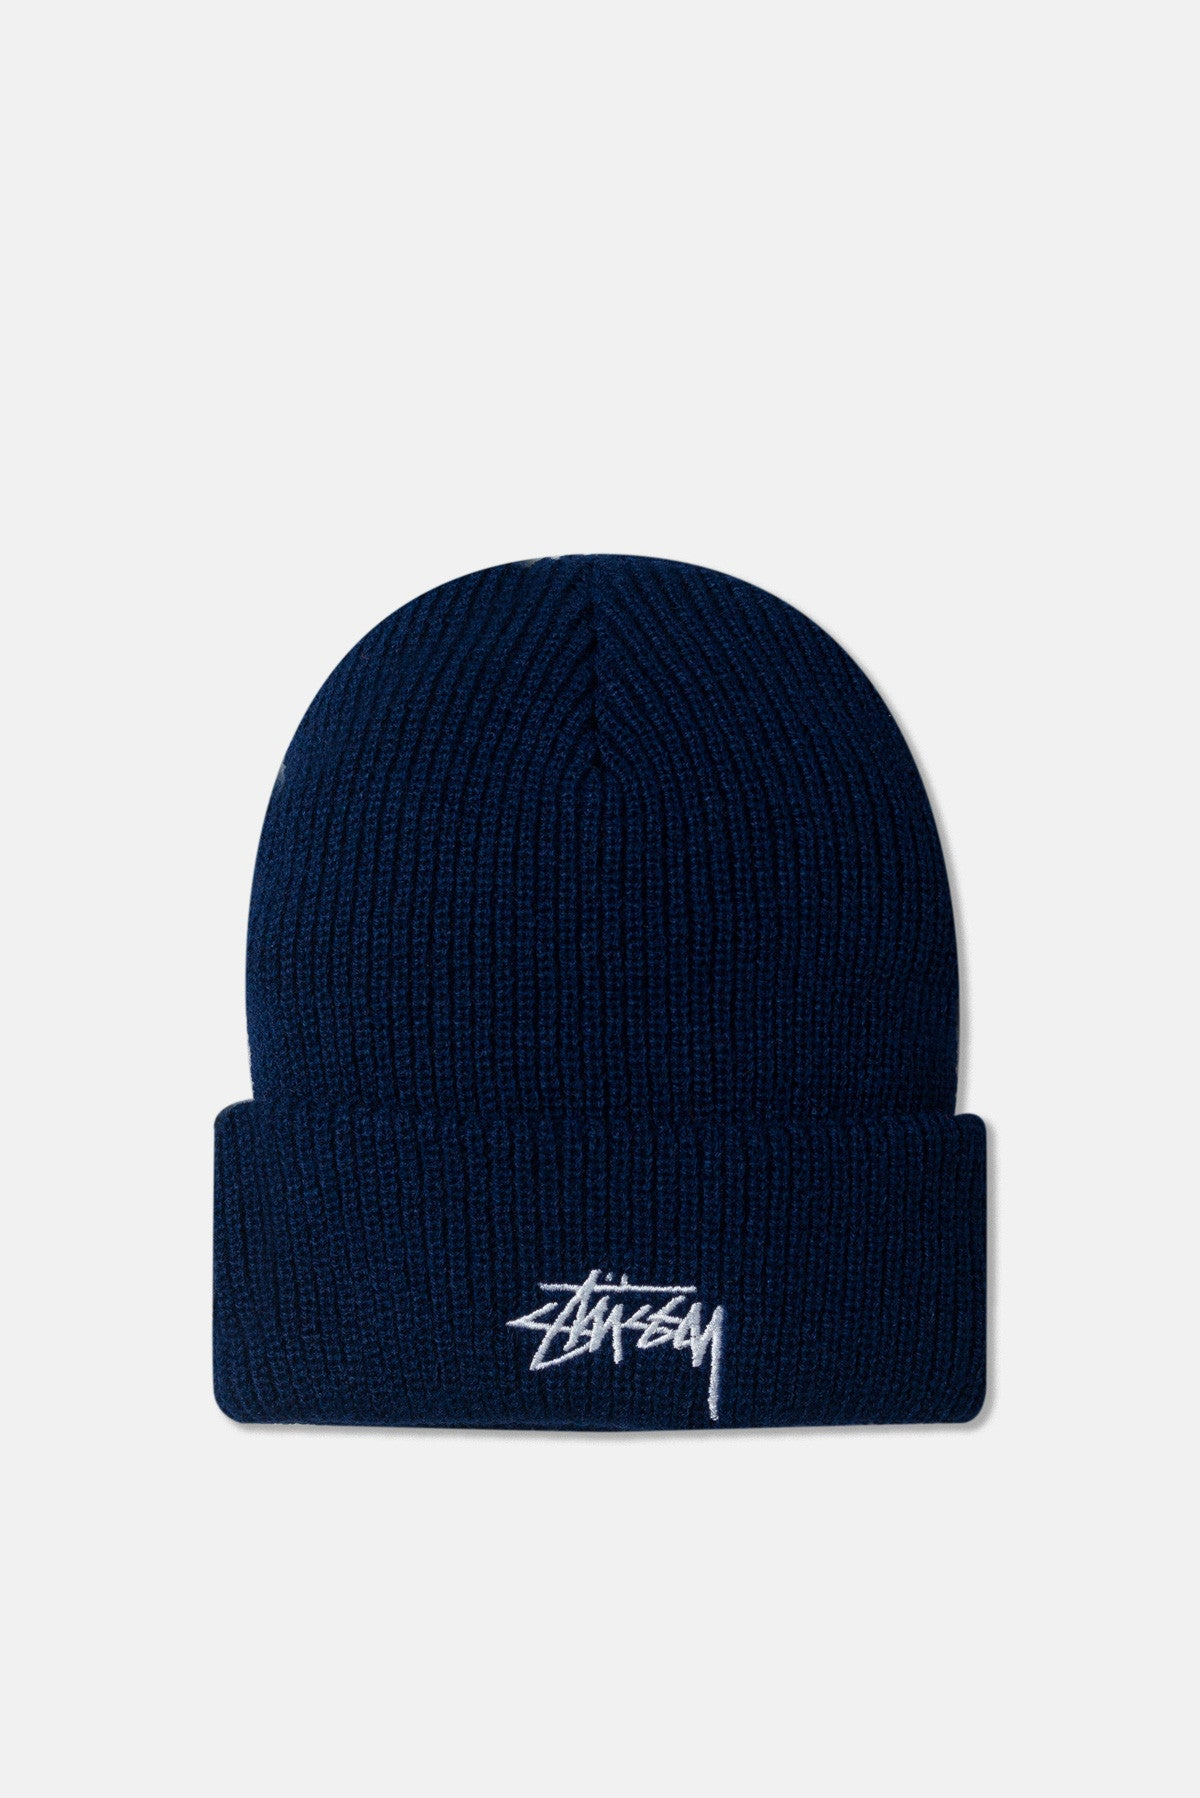 Stussy Stock Cuff Beanie available from Priory 0d384391974